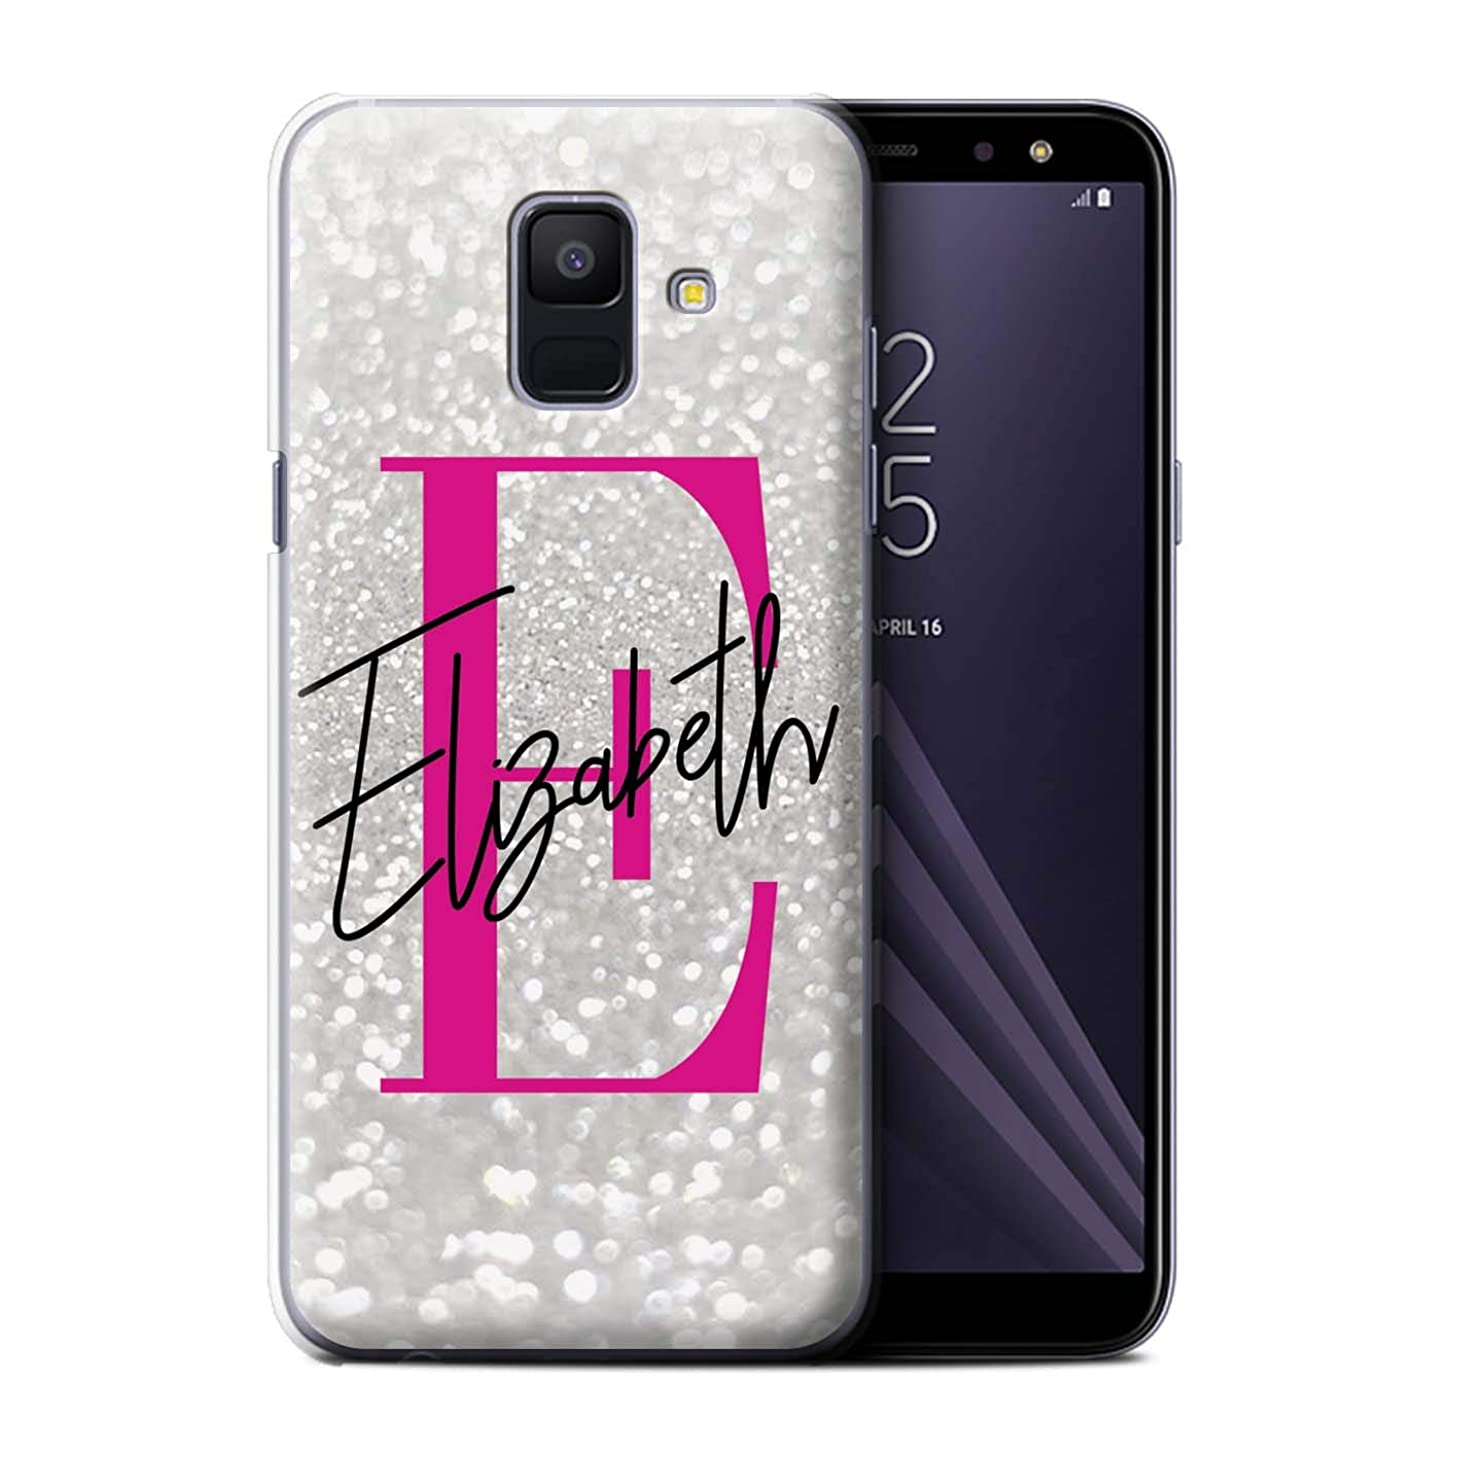 Personalized Custom Faded Look Glitter Effect Case for Samsung Galaxy A6 (2018) / Sassy Hot Pink Initial Design/Initial/Name/Text DIY Cover